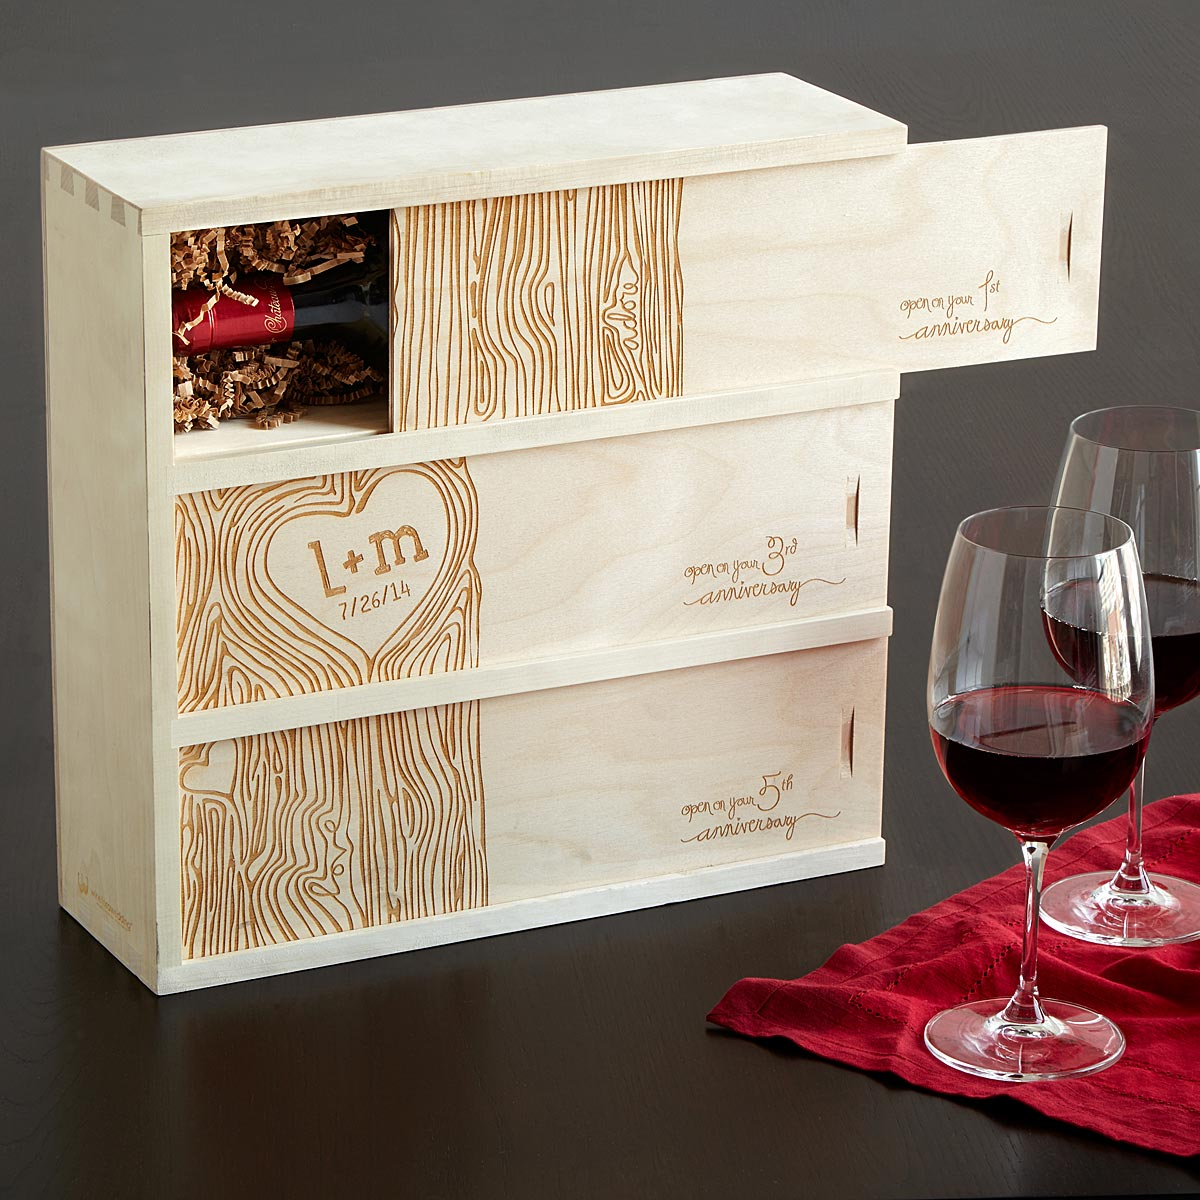 Personalised Wedding Gifts Wine : ANNIVERSARY WINE BOX Personalized Wedding Wine Box UncommonGoods